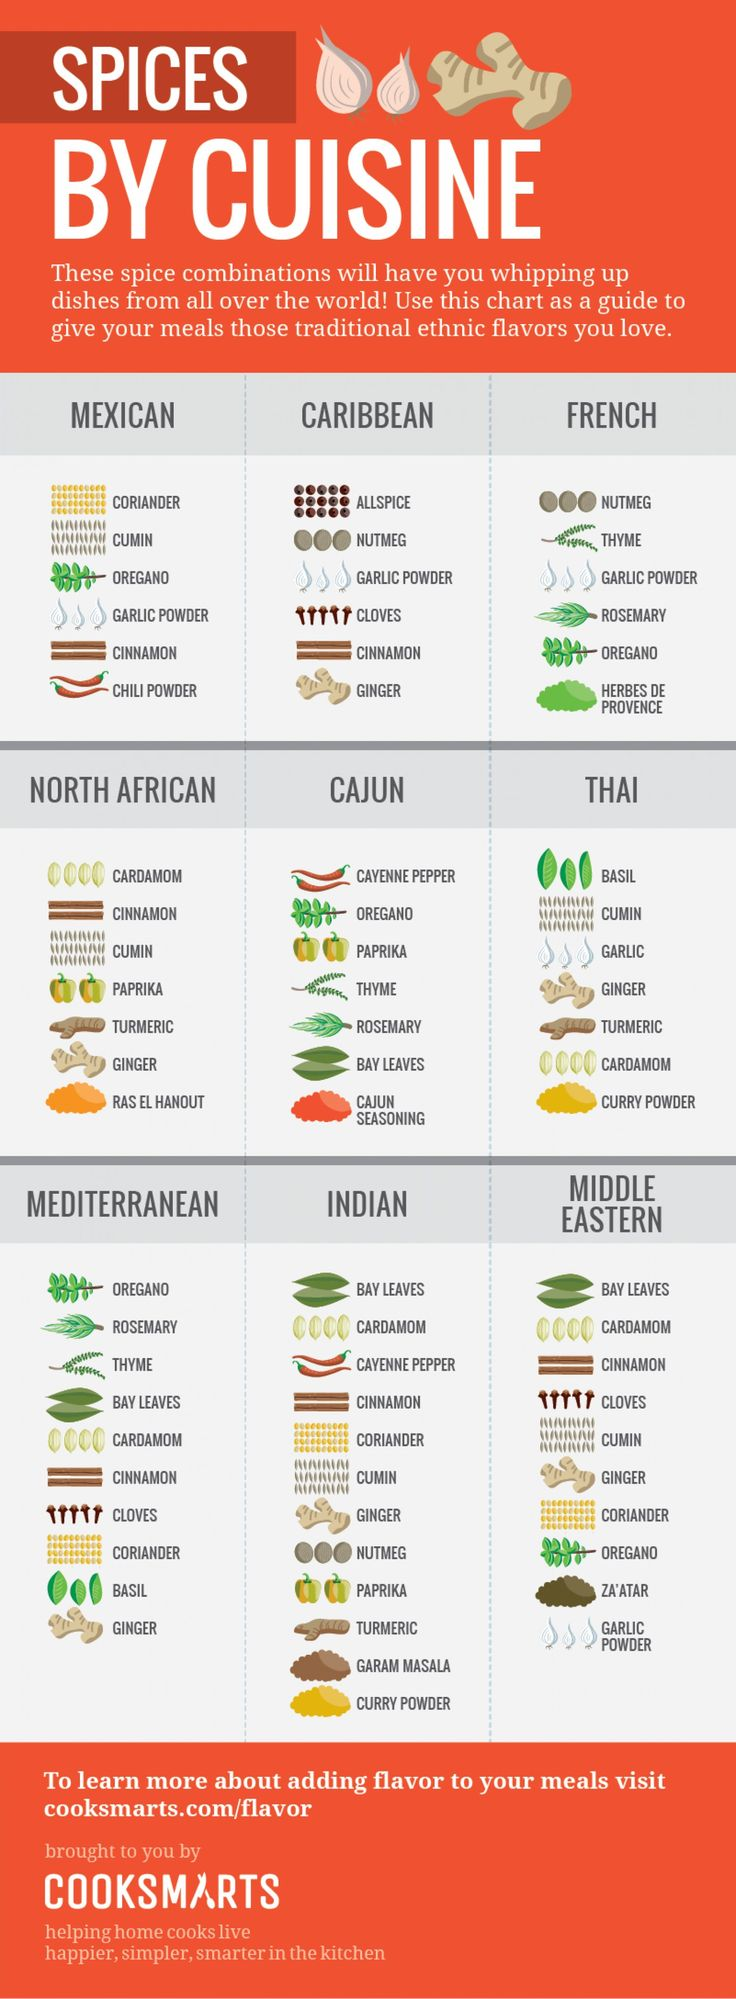 A handy dandy list of the various spice combinations from different cuisines.